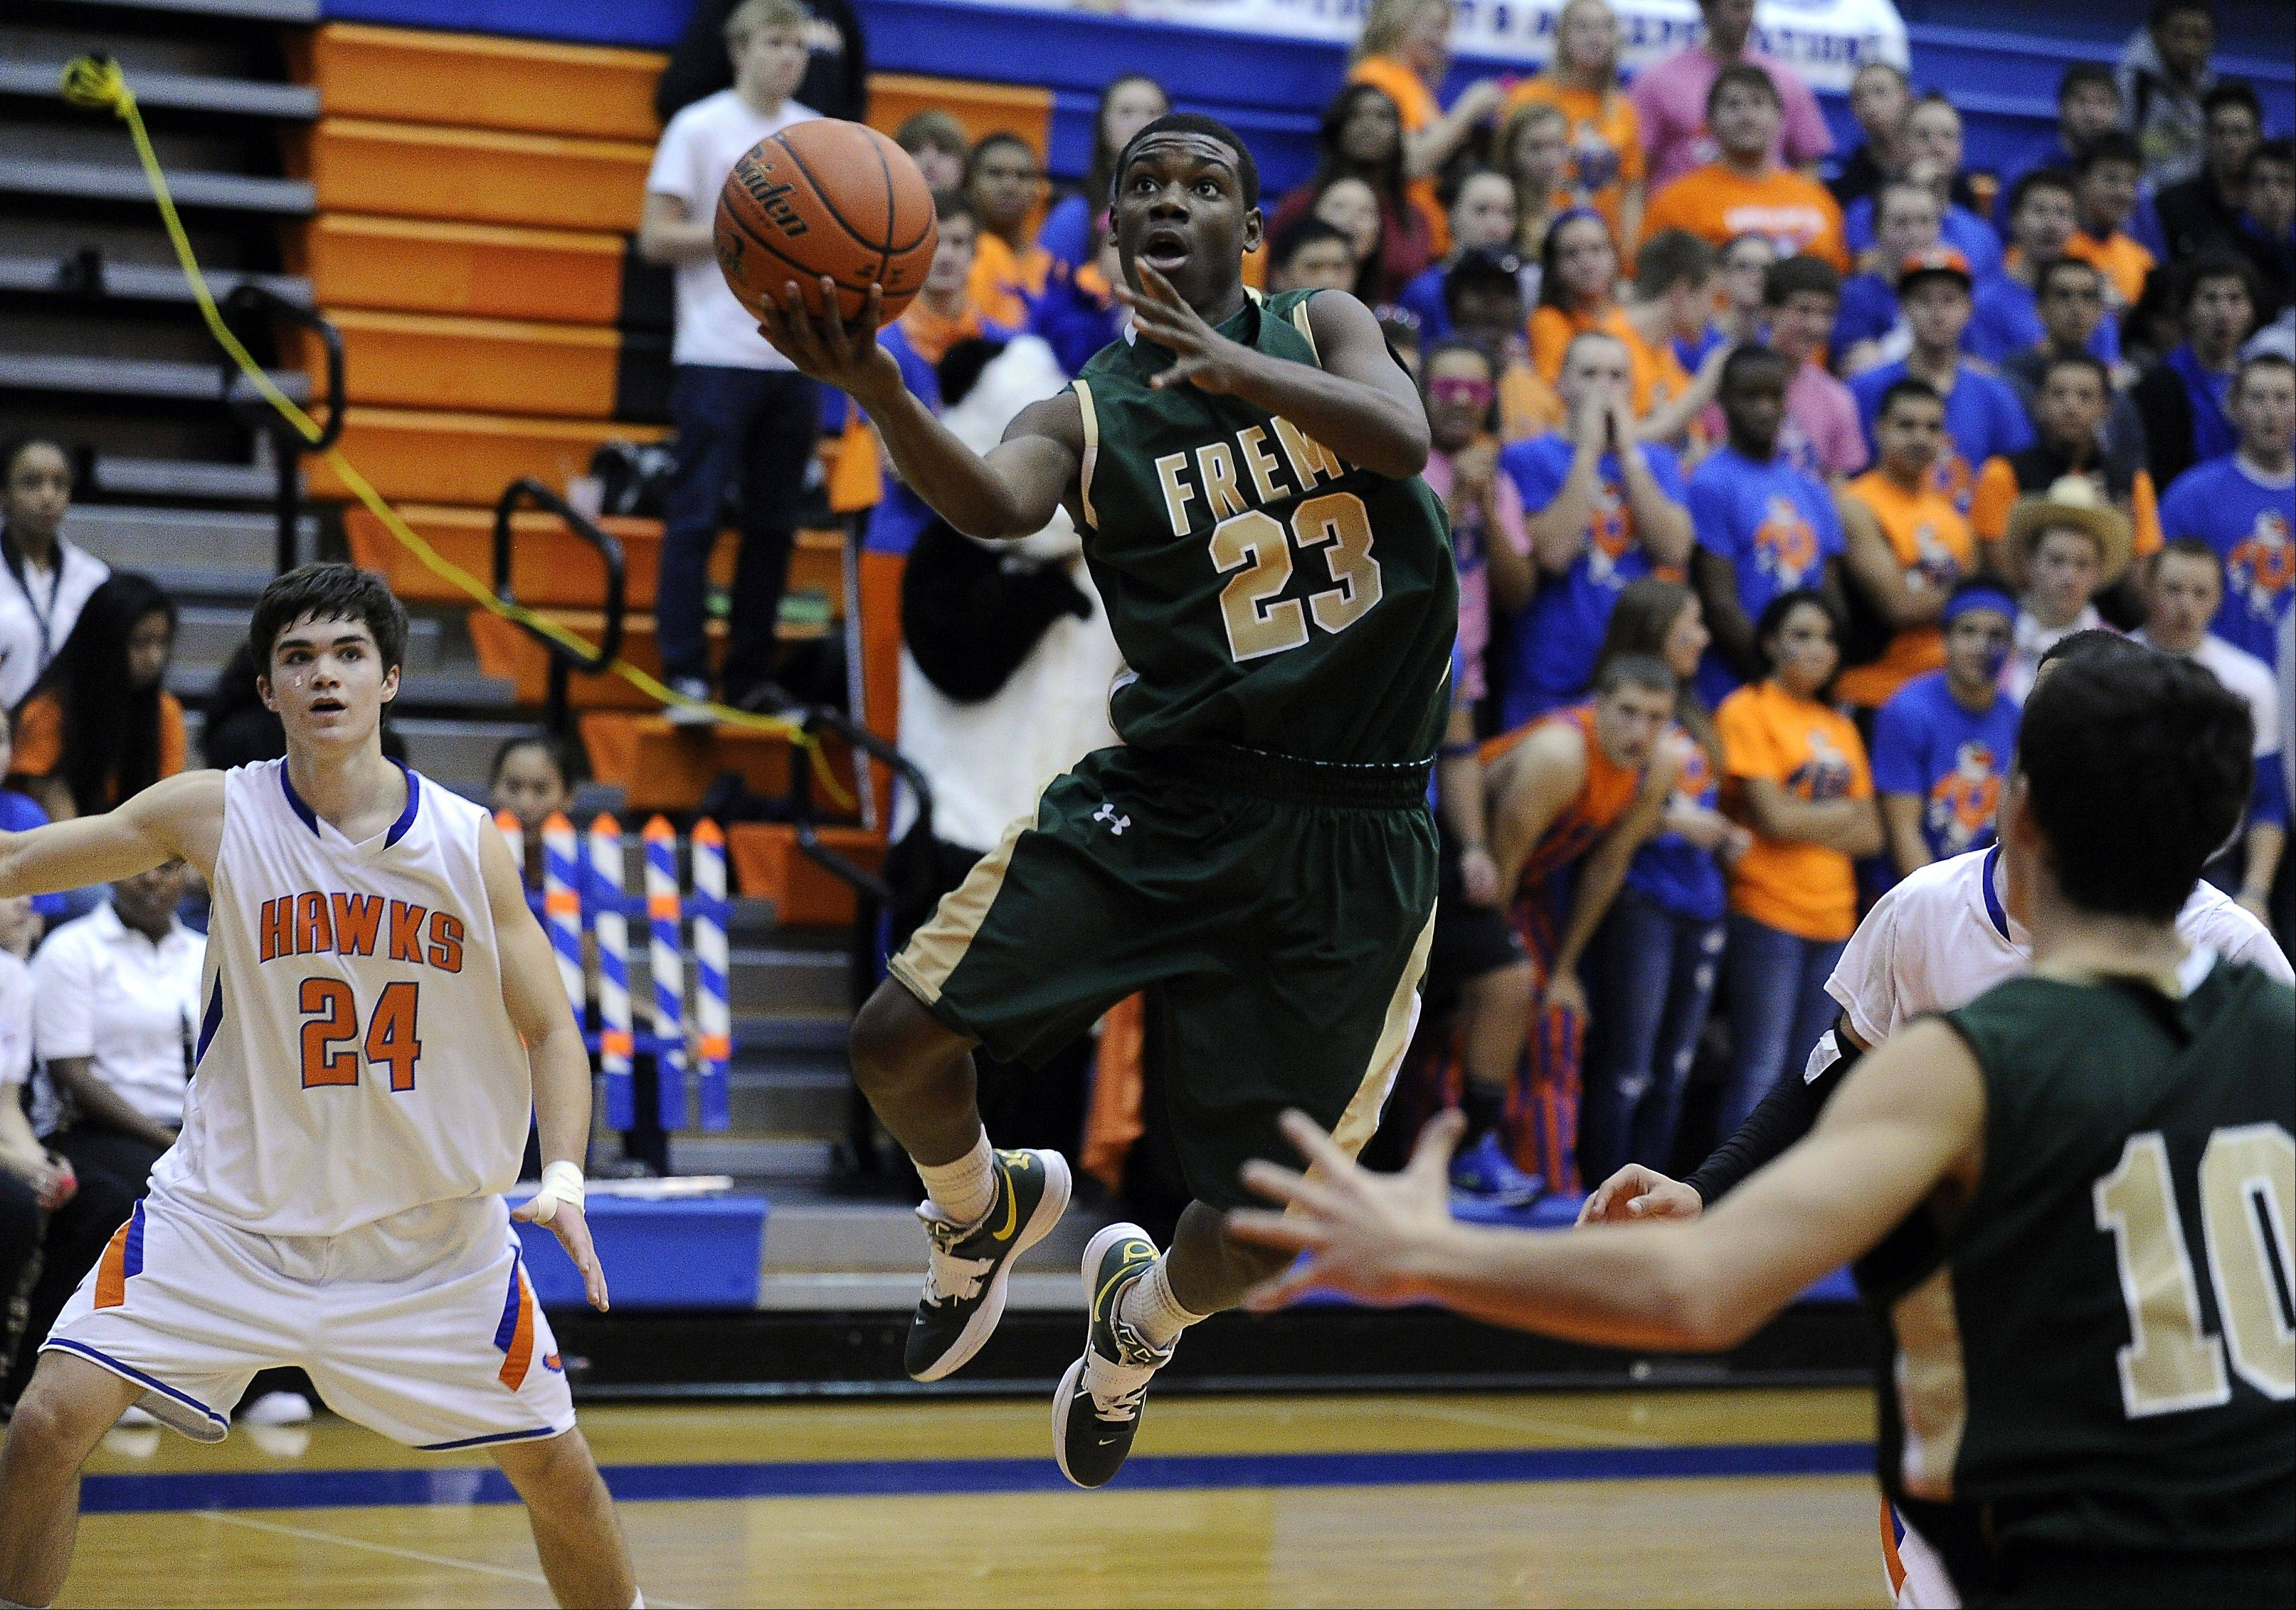 Fremd�s Jalon Roundy glides through Hoffman Estates� defense.